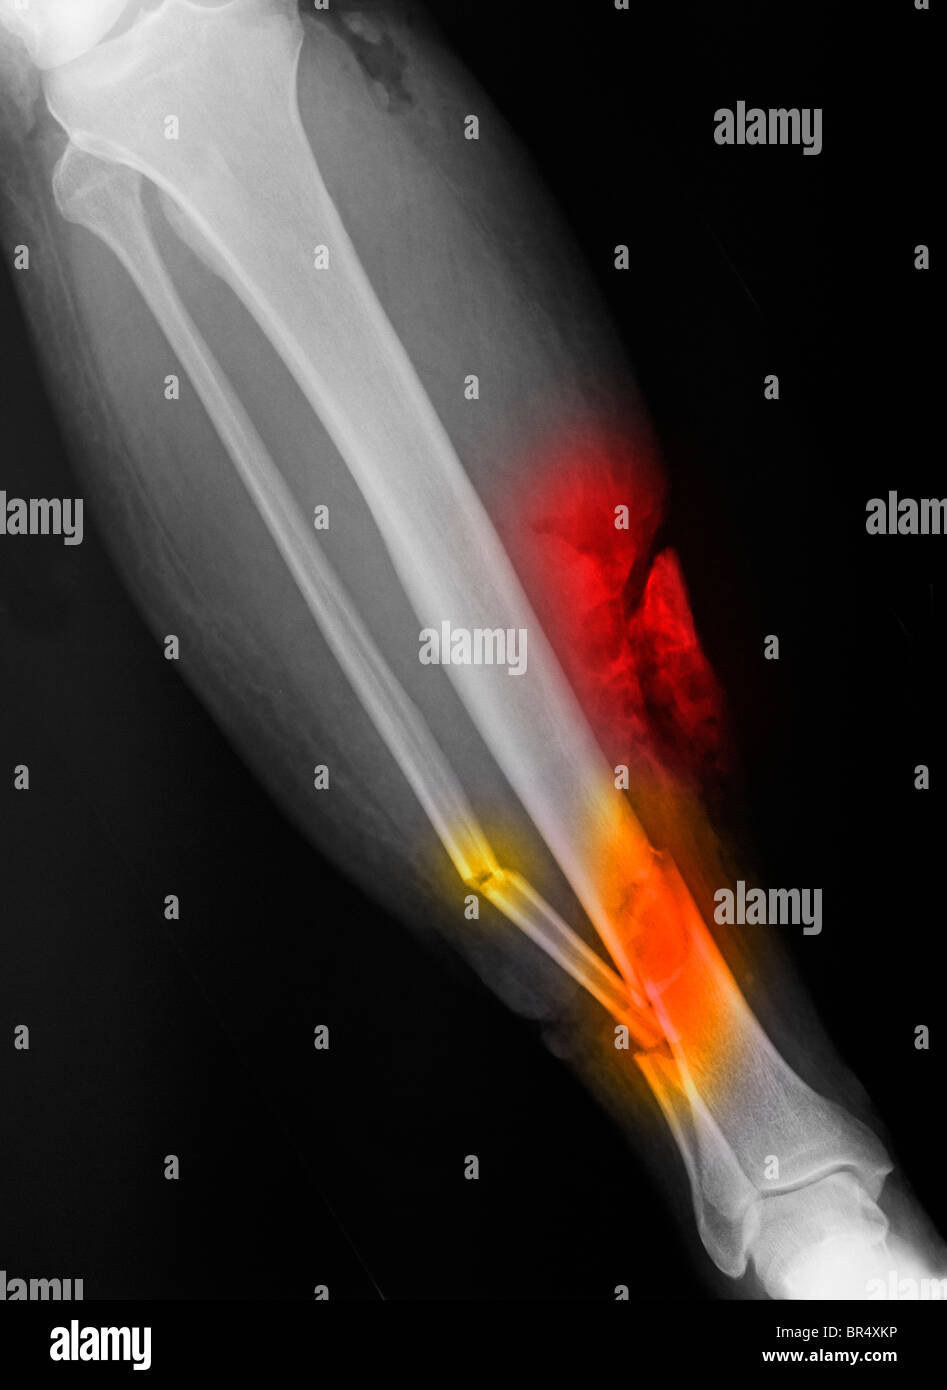 x-ray showing an open tibia and fibula fracture of the lower leg of a 65 year old man involved in a motorcycle accident - Stock Image